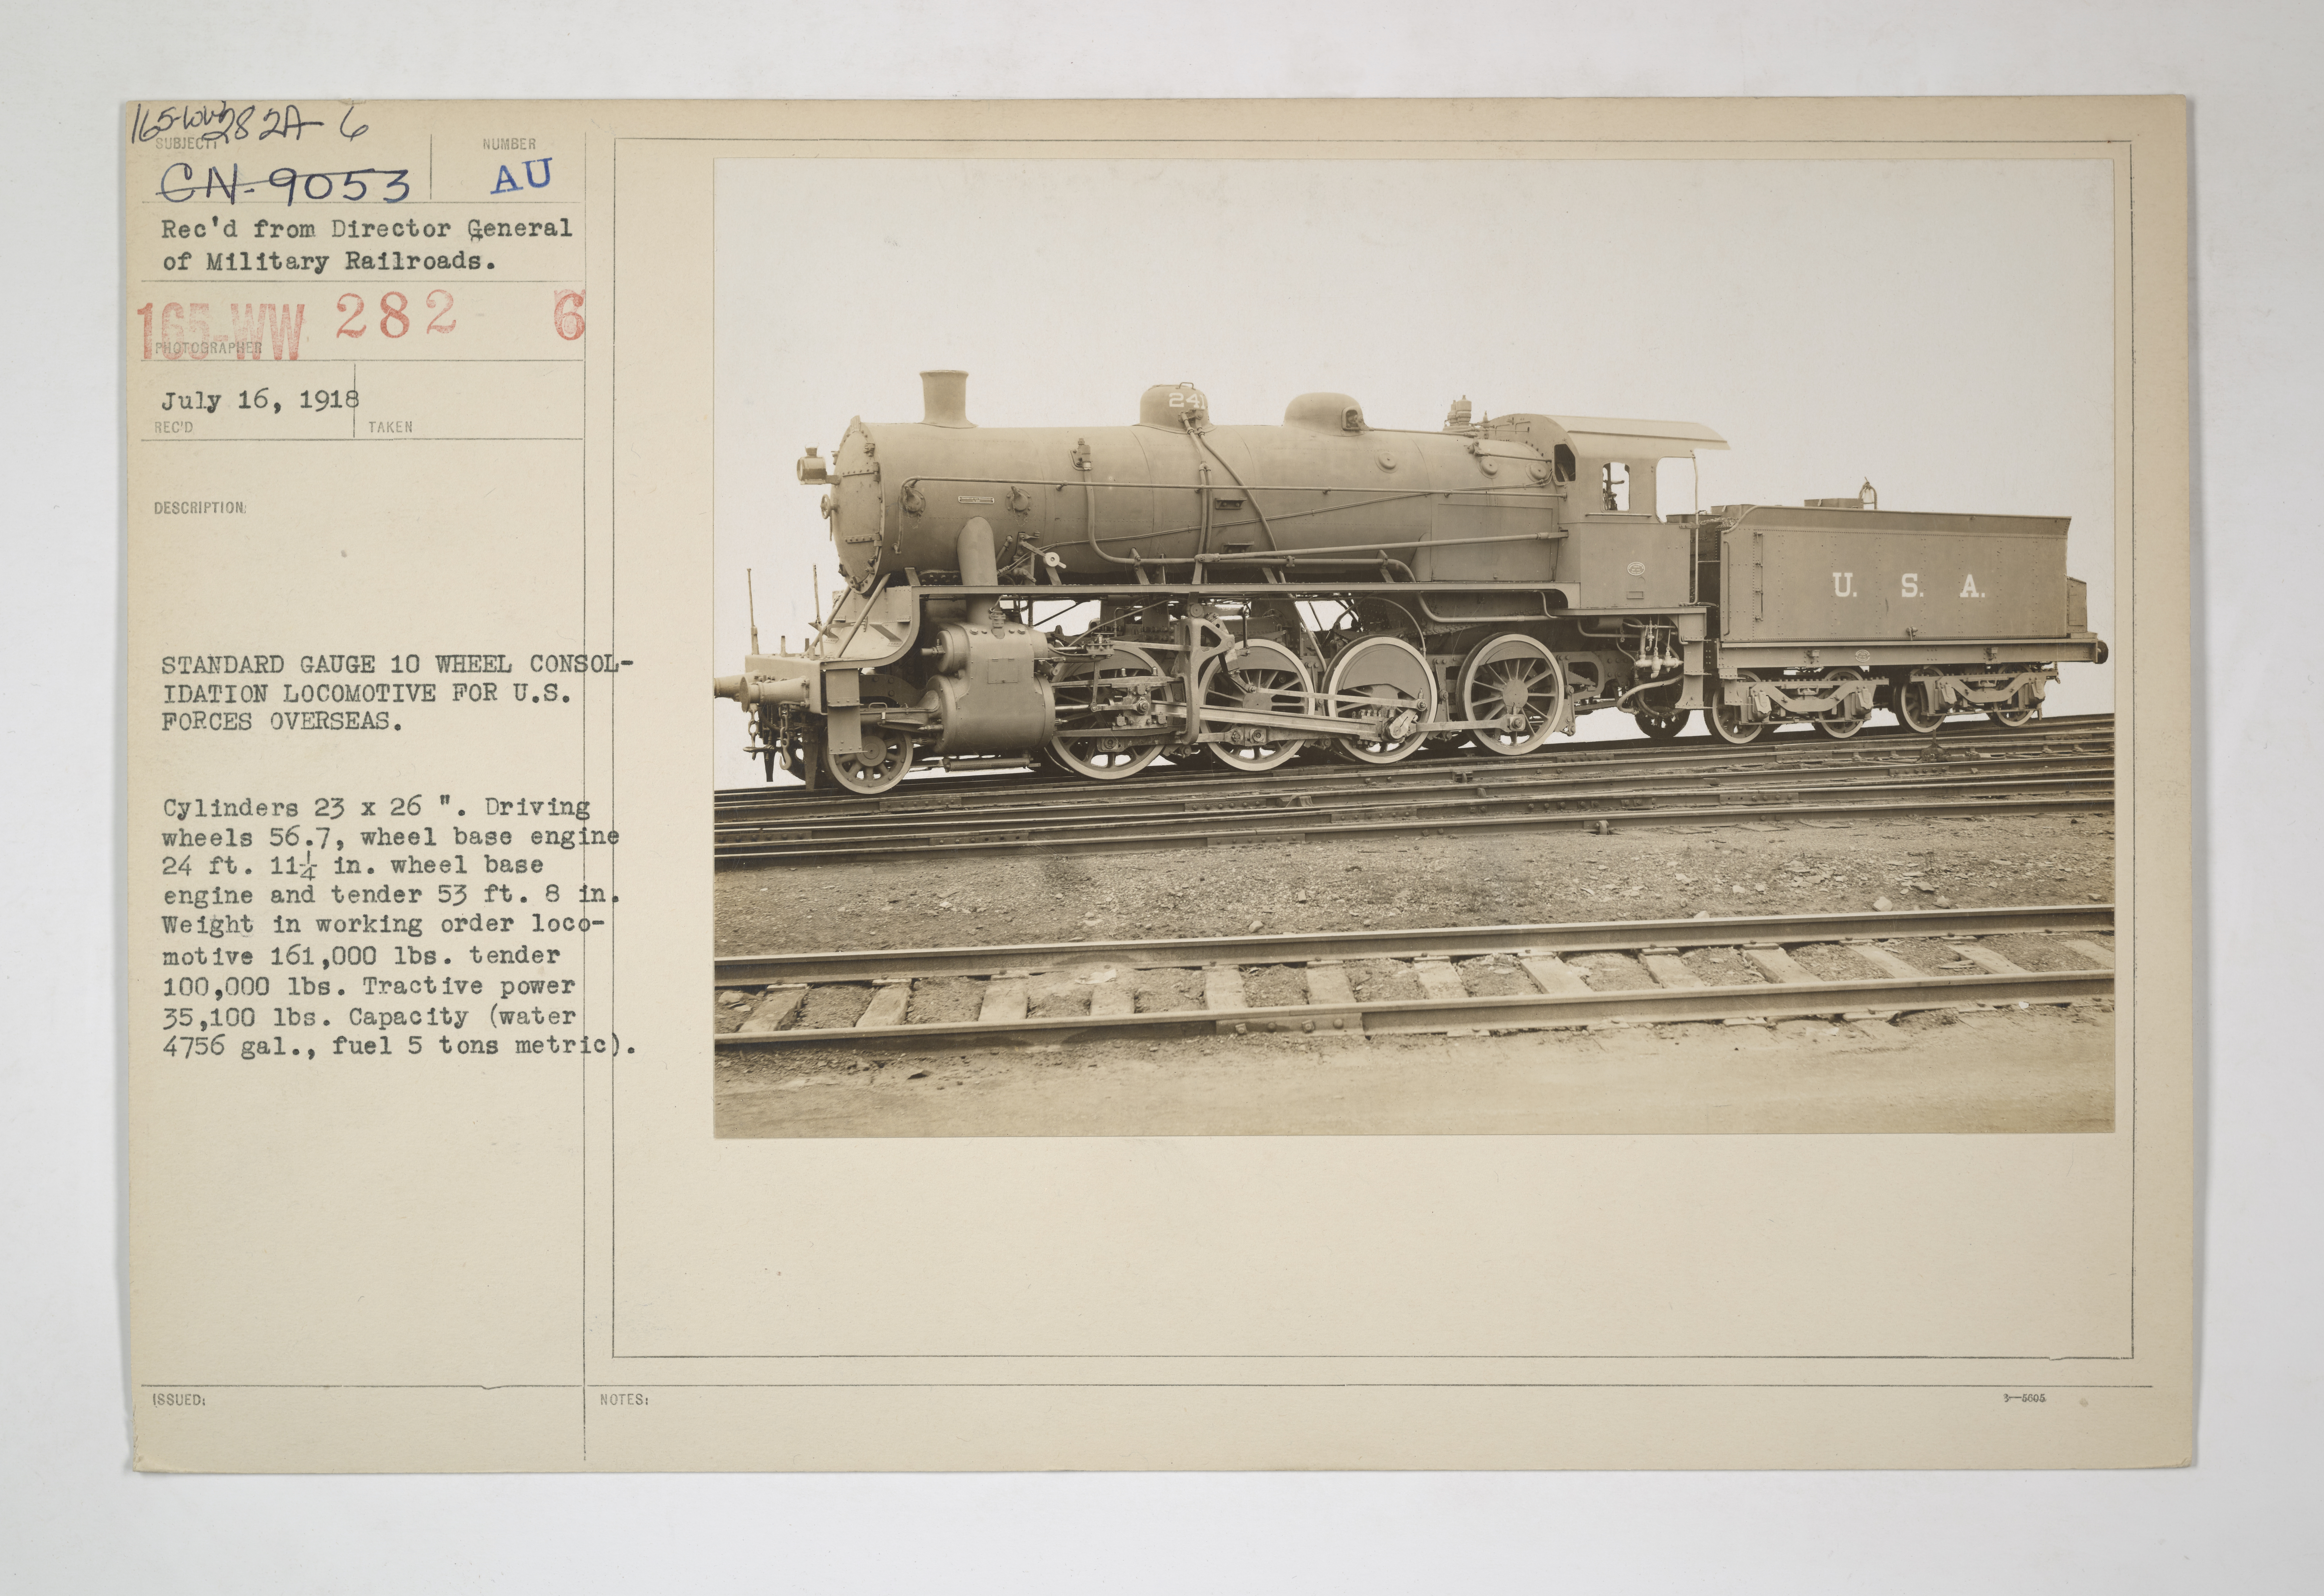 Military Administration - Transportation - Rail - Rolling Stock - STANDARD GAUGE 10 WHEEL CONSOLIDATION LOCOMOTIVE FOR U.S. FORCES OVERSEAS